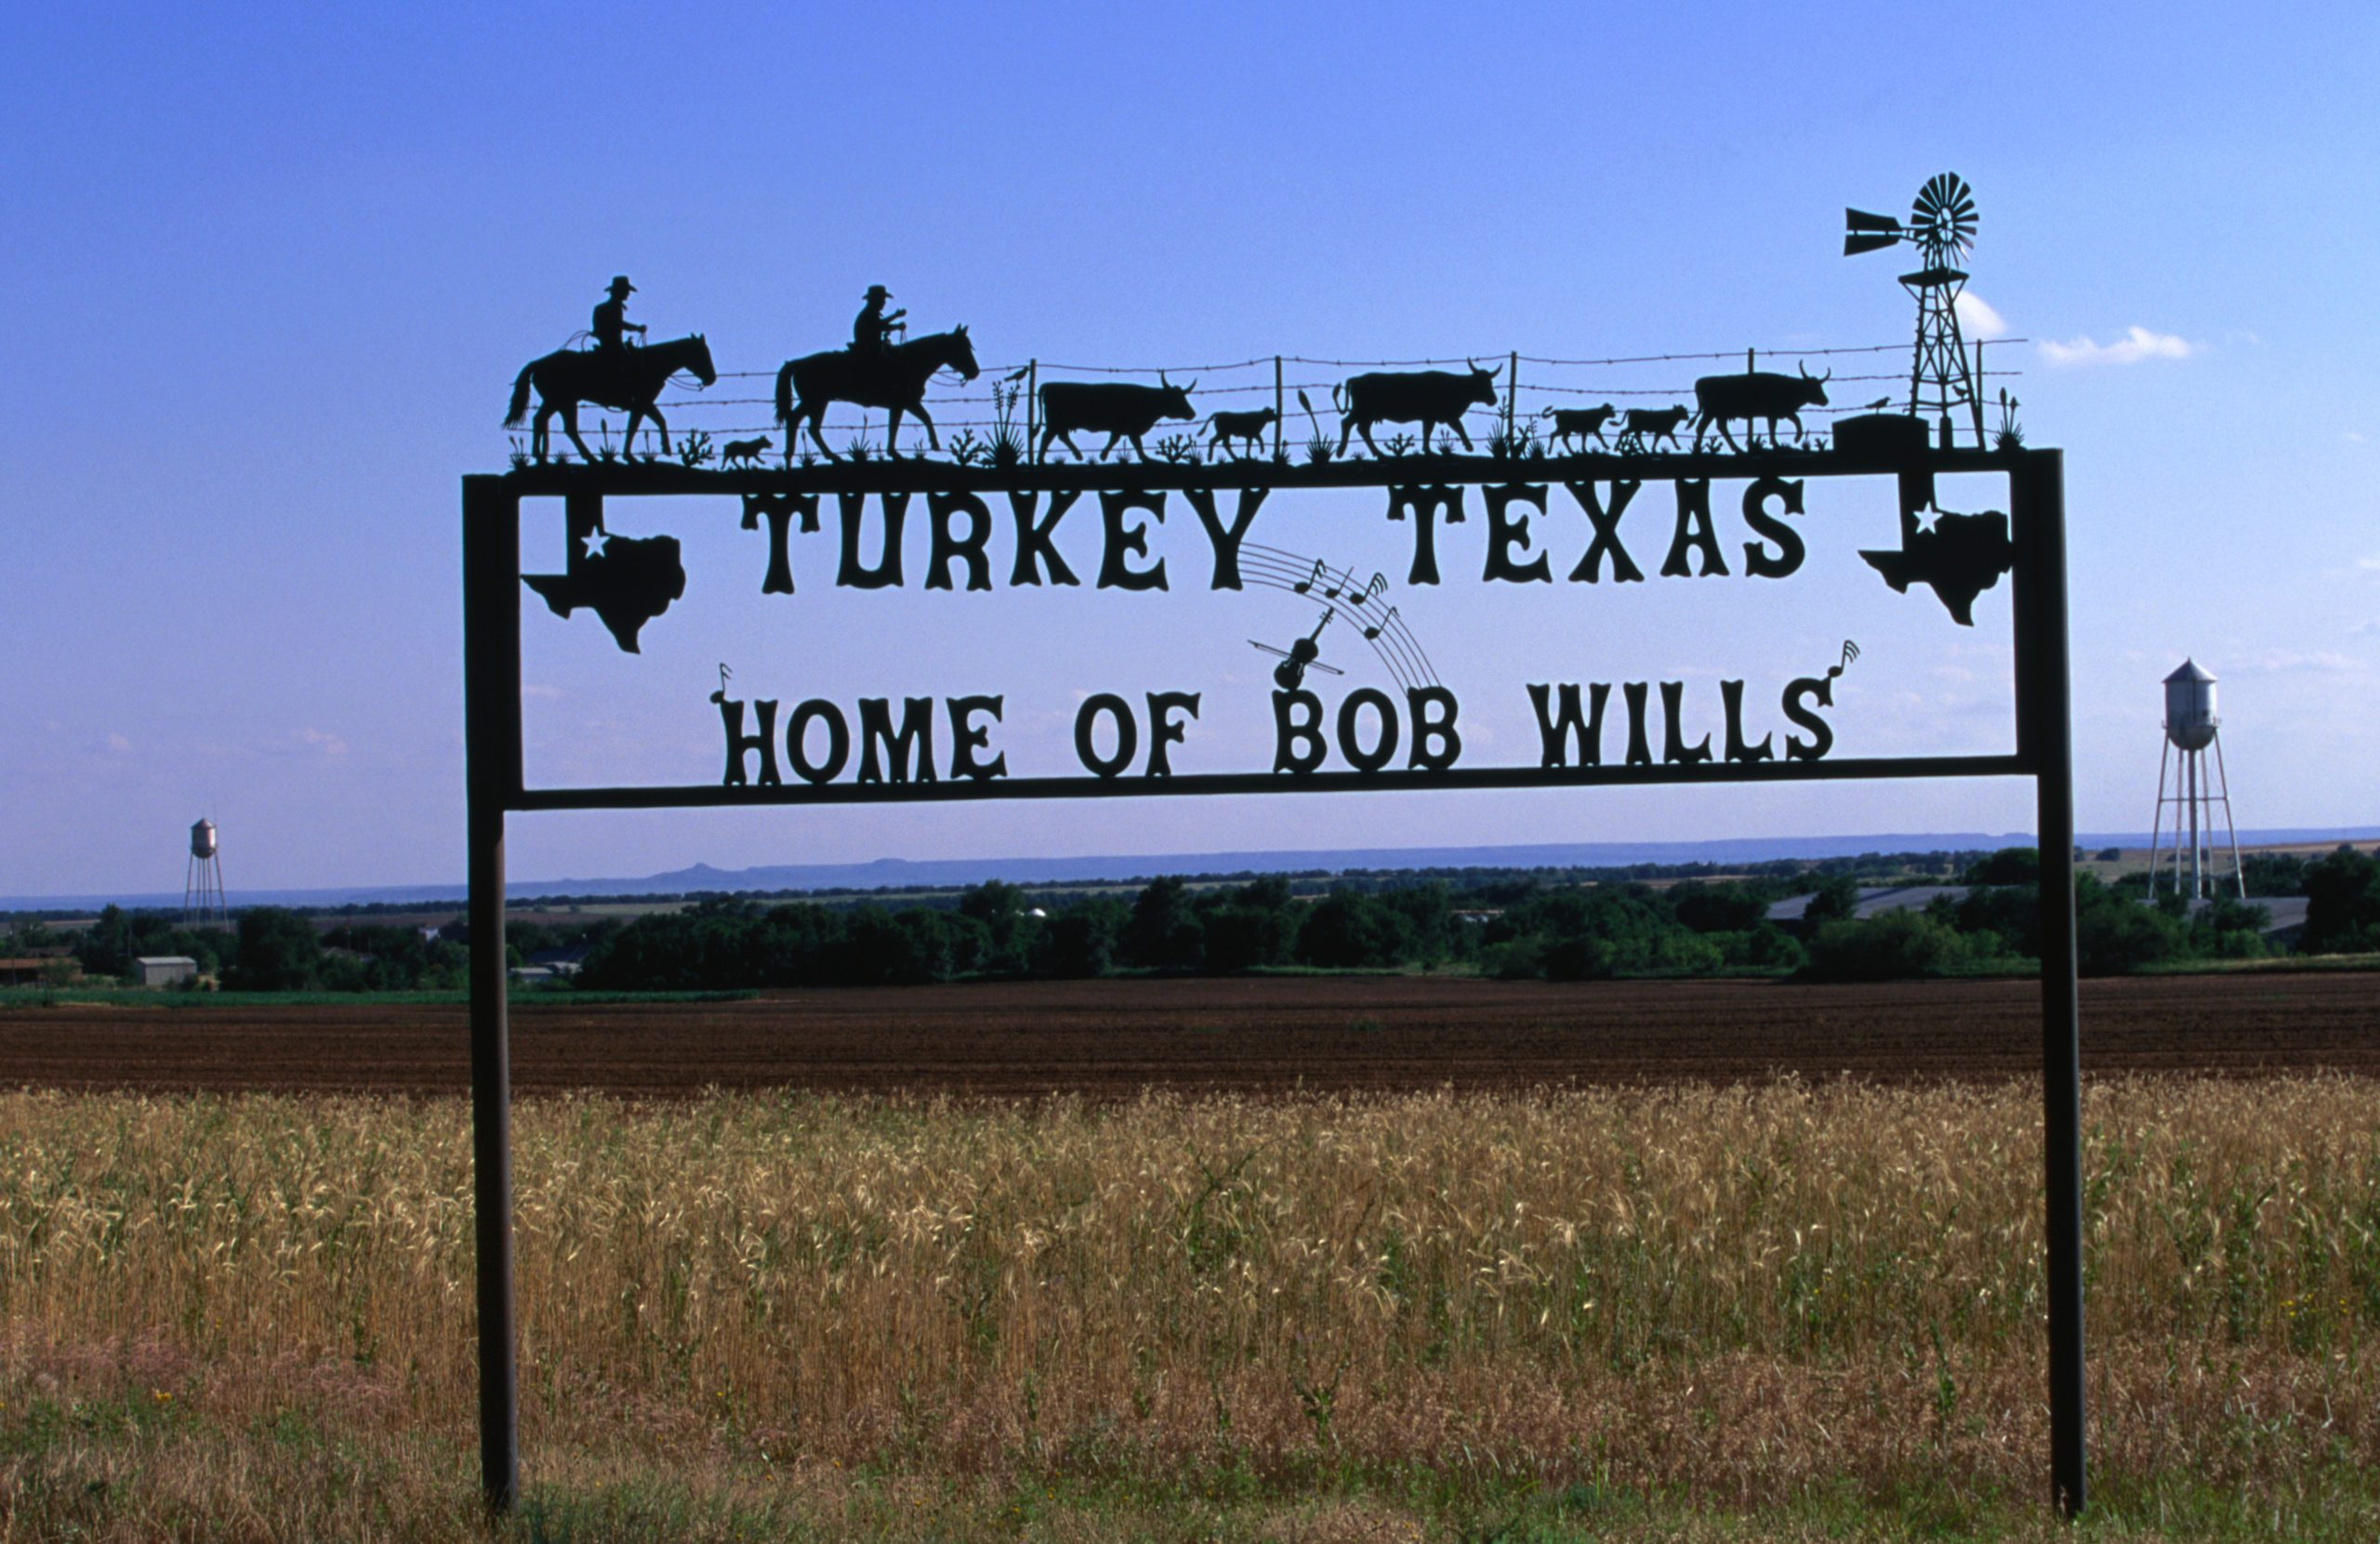 A sign for Turkey Texas, capital of Western Swing music and home of the country musician Bob Wills and his Texas Playboys.